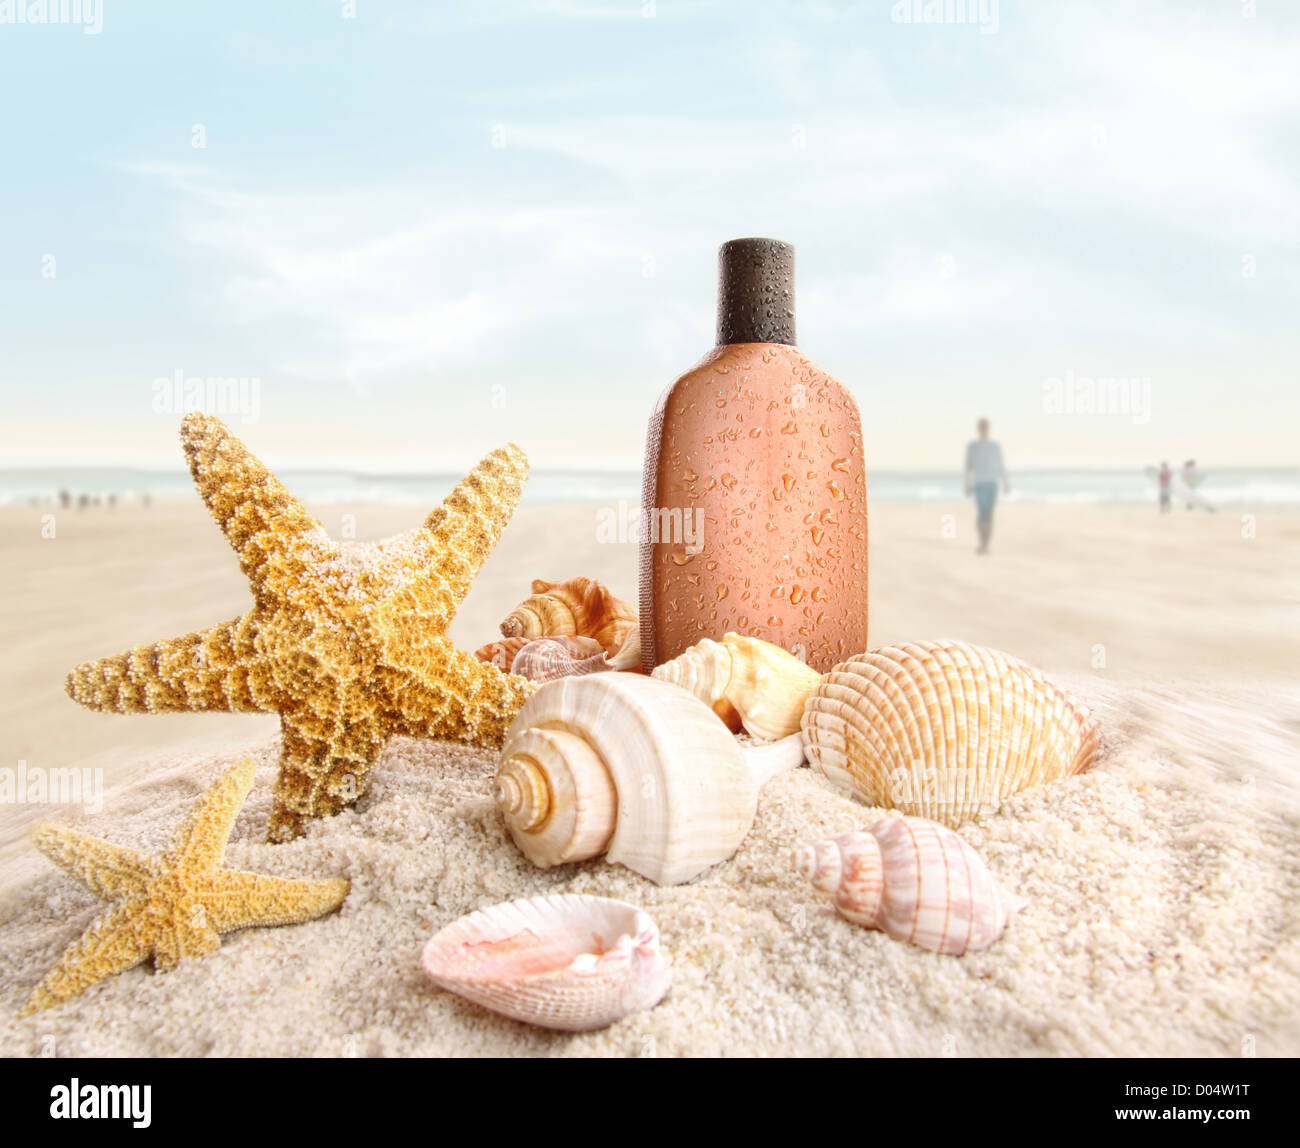 Suntan lotion and seashells with people on the beach - Stock Image